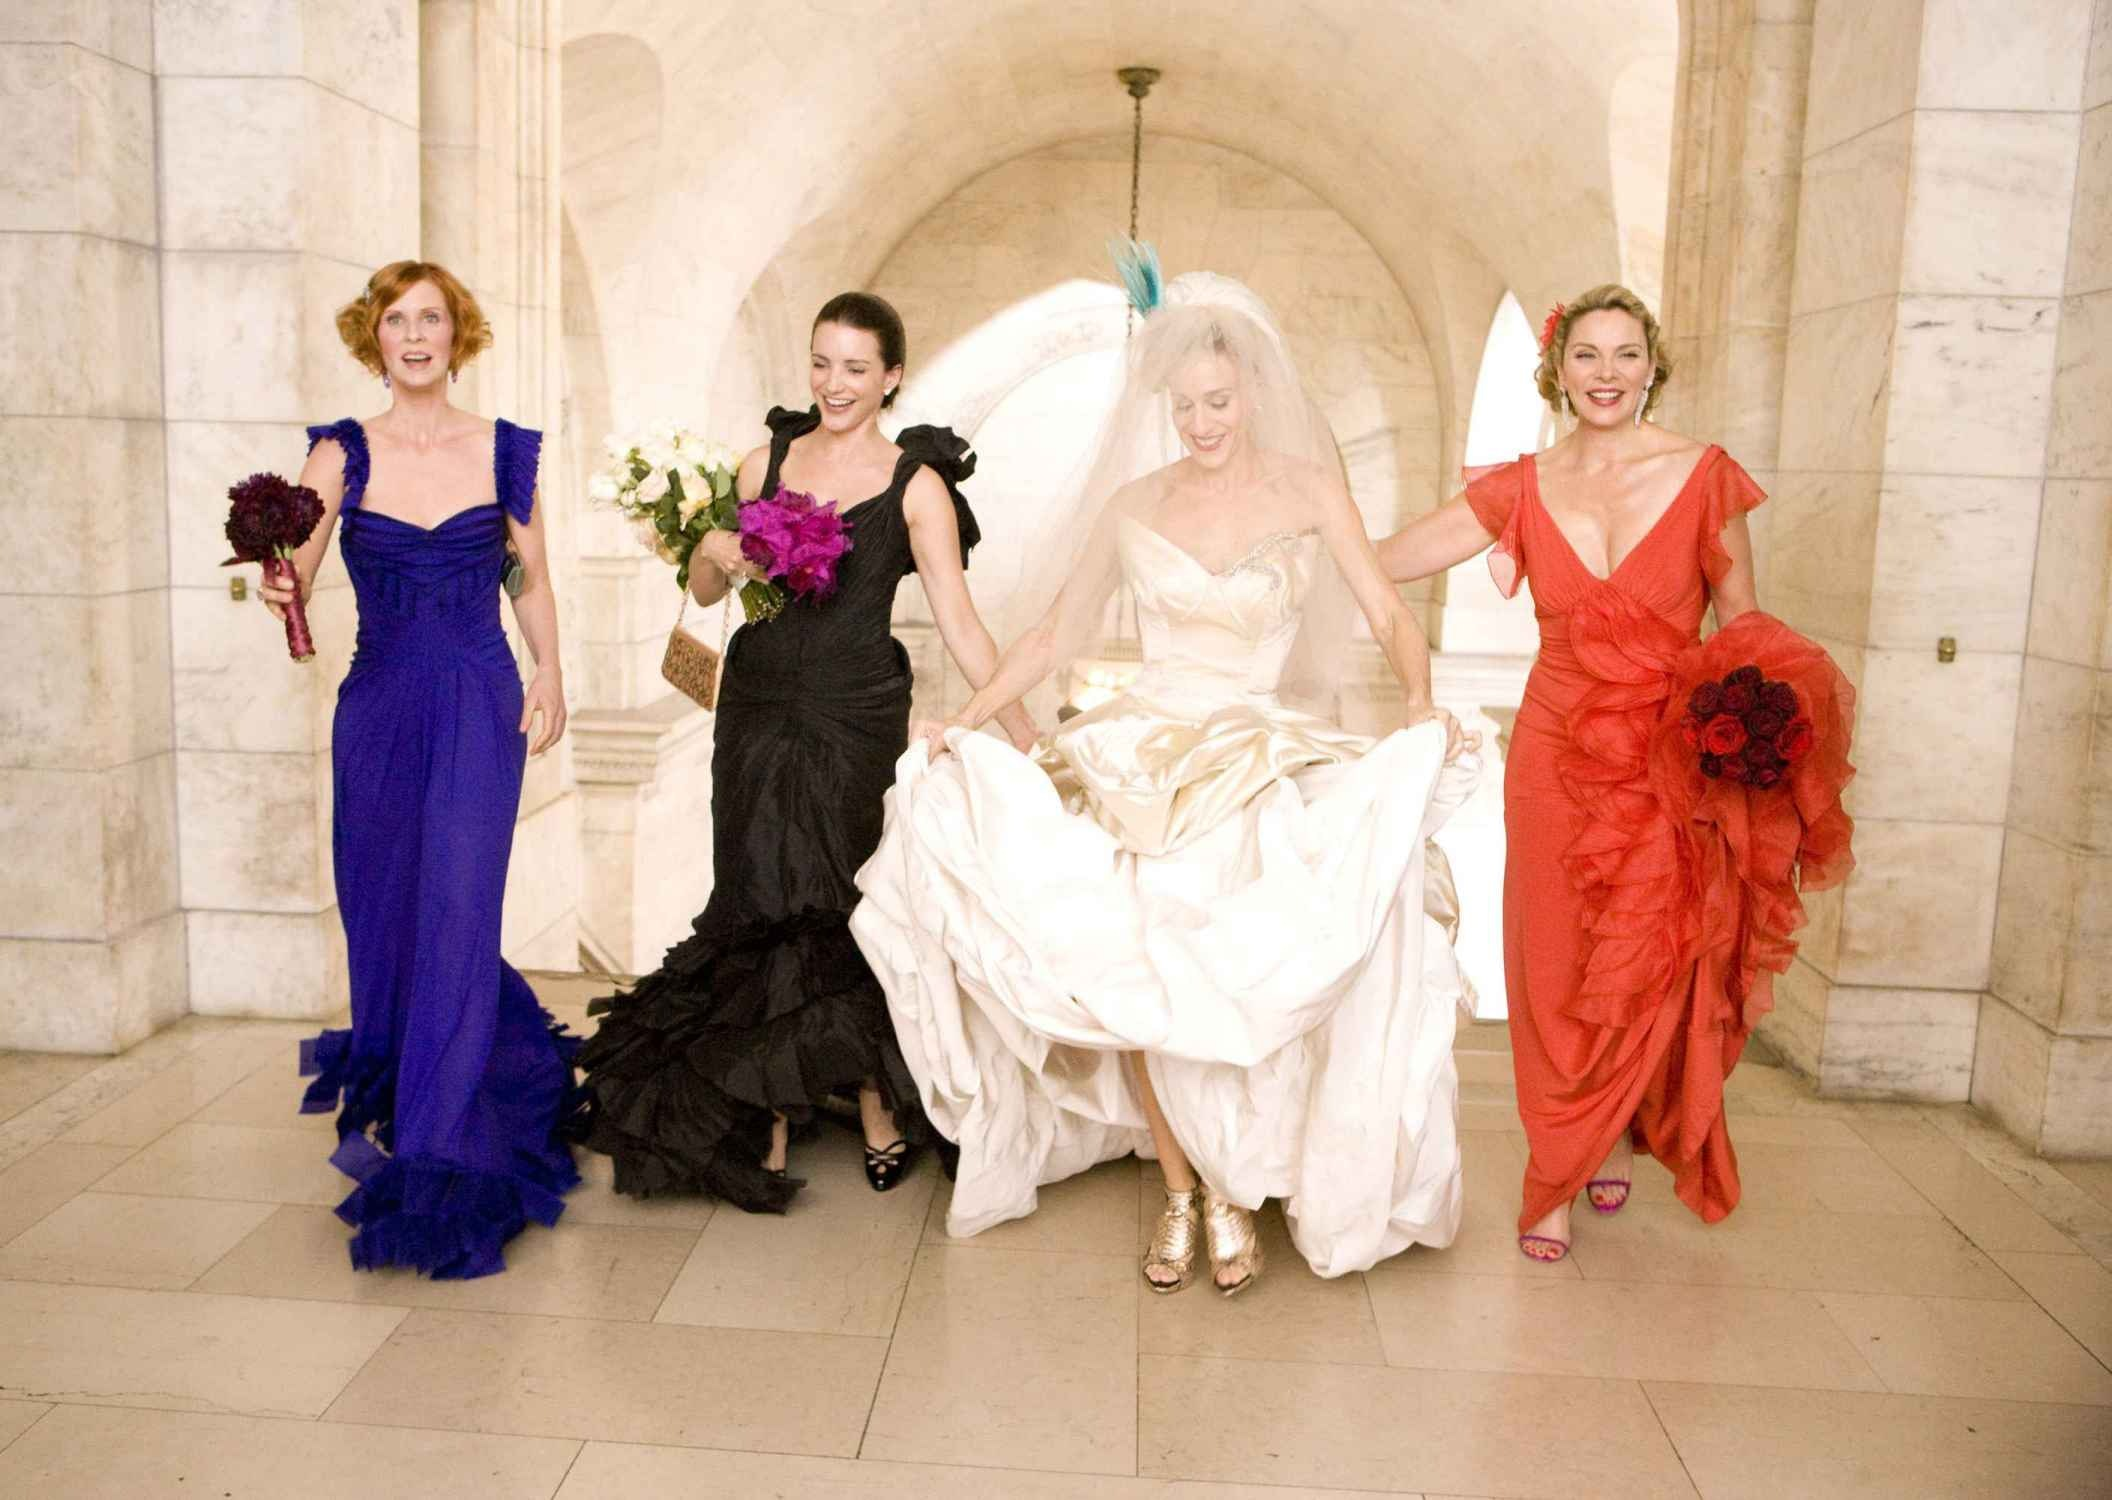 11 ugly bridesmaid dresses from tv and movies that will make you 11 ugly bridesmaid dresses from tv and movies that will make you happier about your own ombrellifo Images